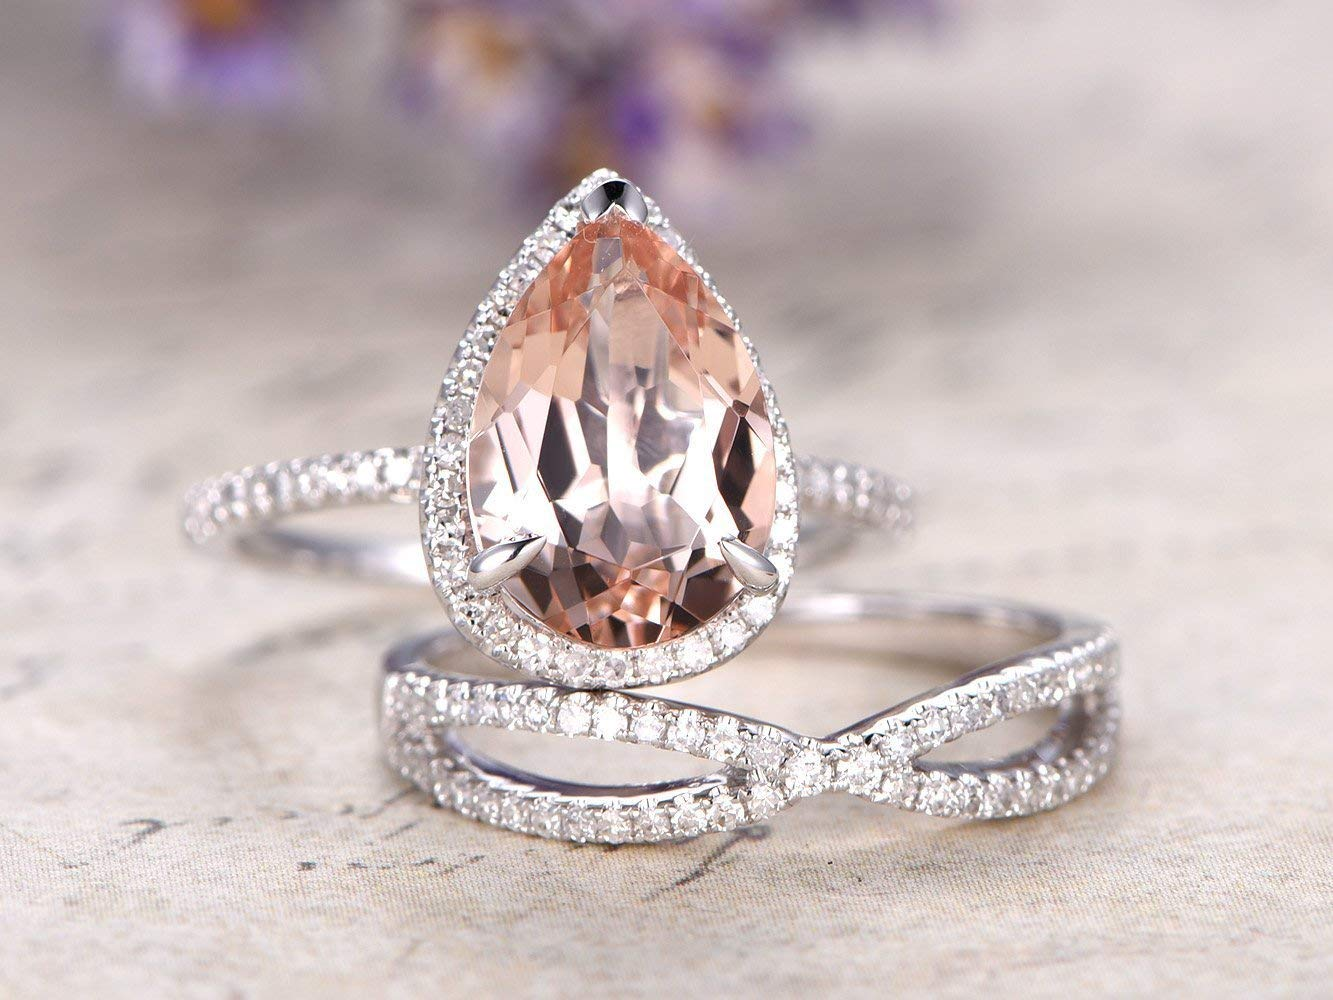 2 Natural Pink Morganite Engagement Ring Set,8X12Mm Pear Shaped Schnitt Pink Gemstone Diamond Halo Rings Half Eternity Si I-J Diamonds Promise Wedding Matching Band Anniversary Sets Size 4-10 Vintage